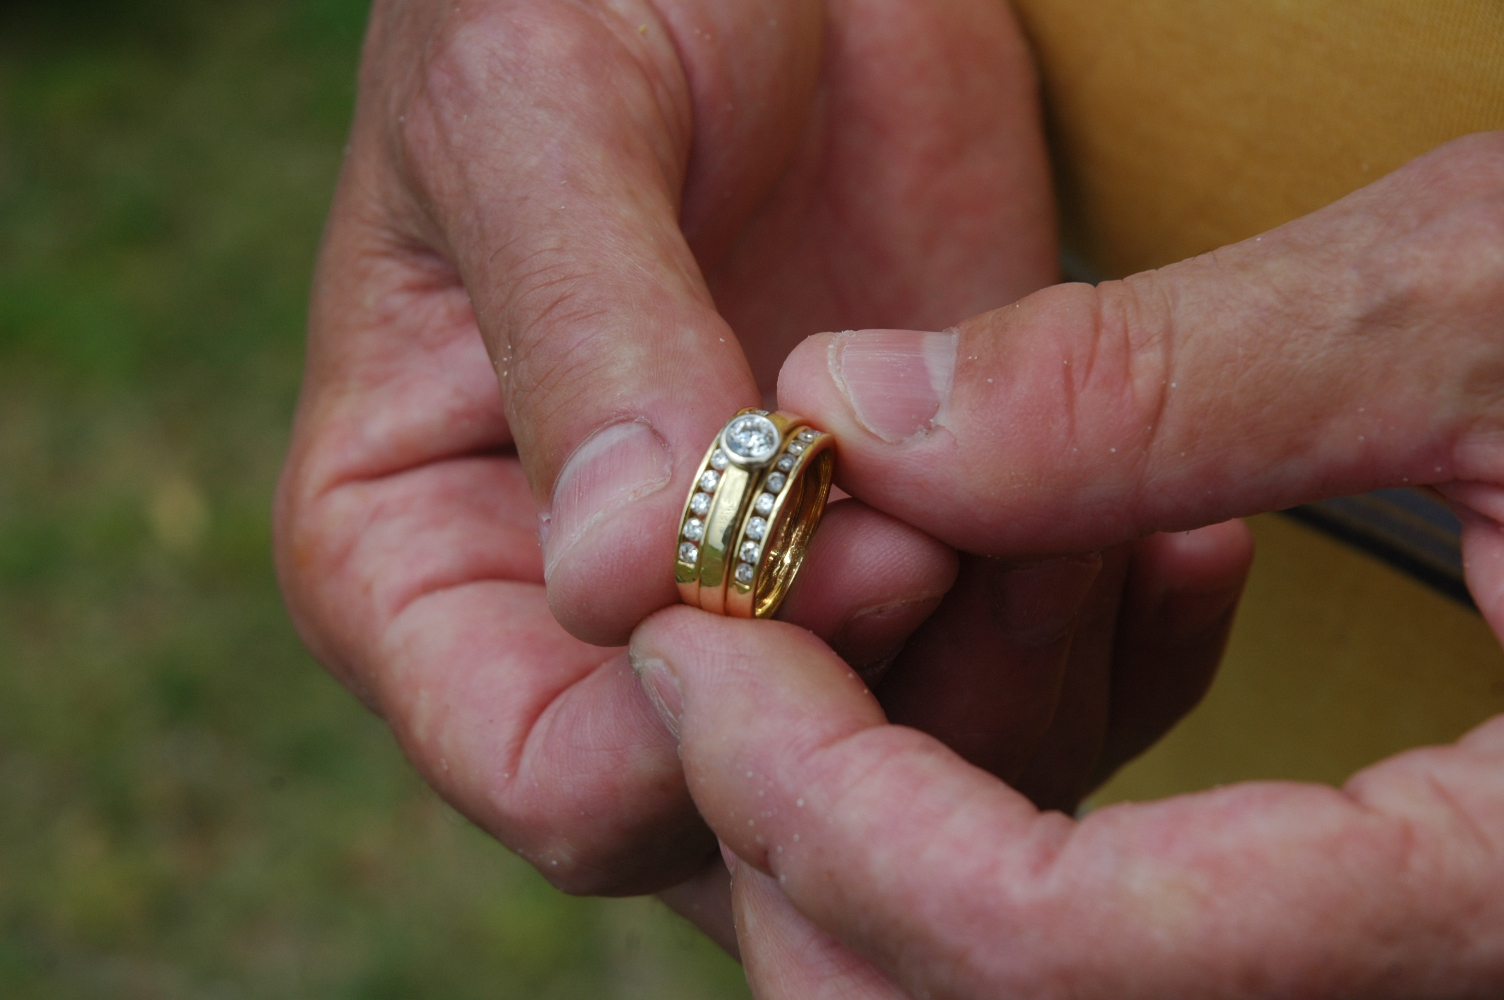 allisons lost wedding ring from rockingham beach - Lost Wedding Ring